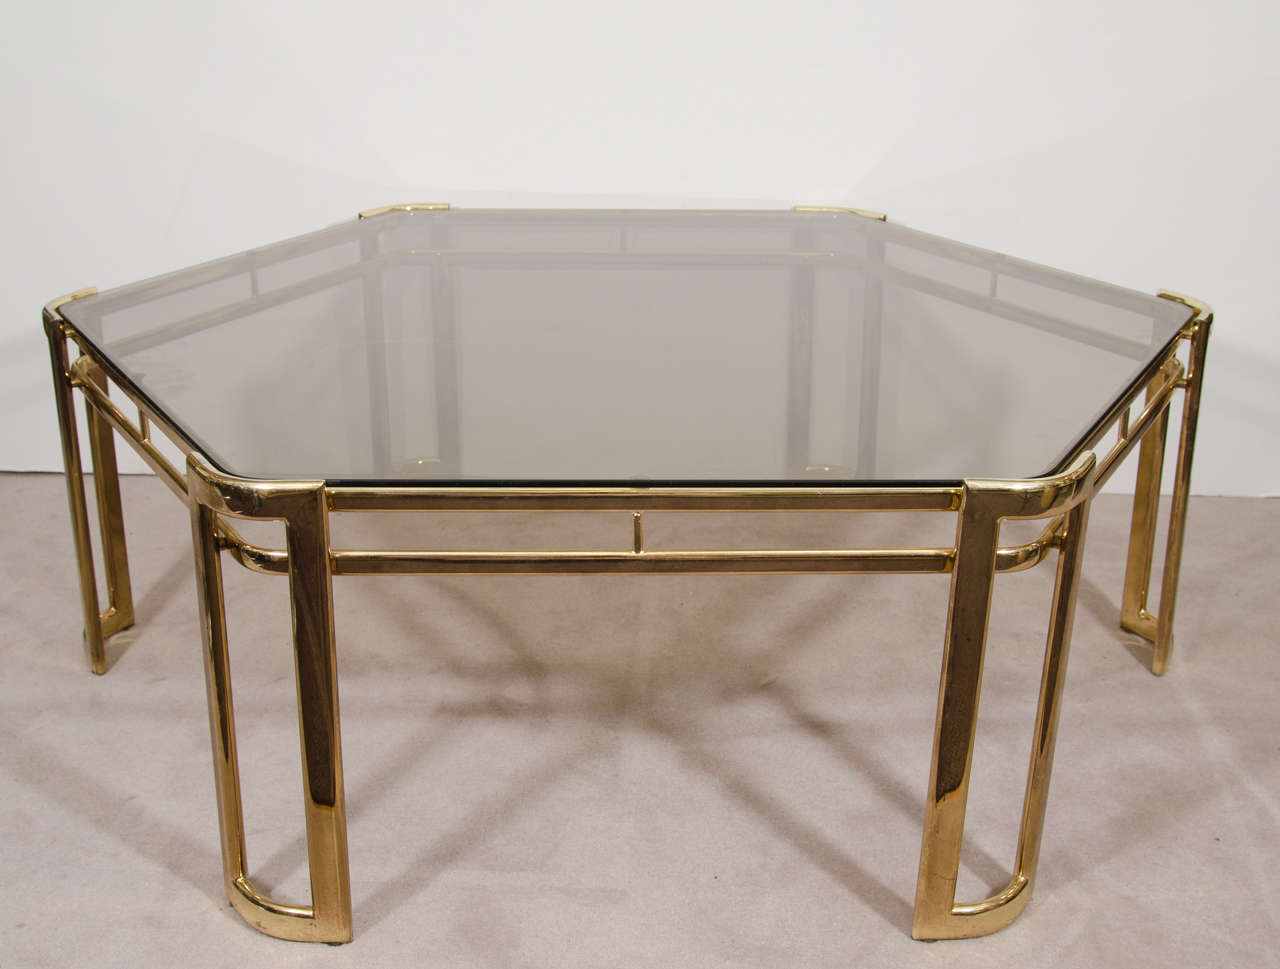 A vintage brass-plated and smoked glass hexagonal coffee or cocktail table.   Good vintage condition with age appropriate wear and patina. One faint scratch to glass.